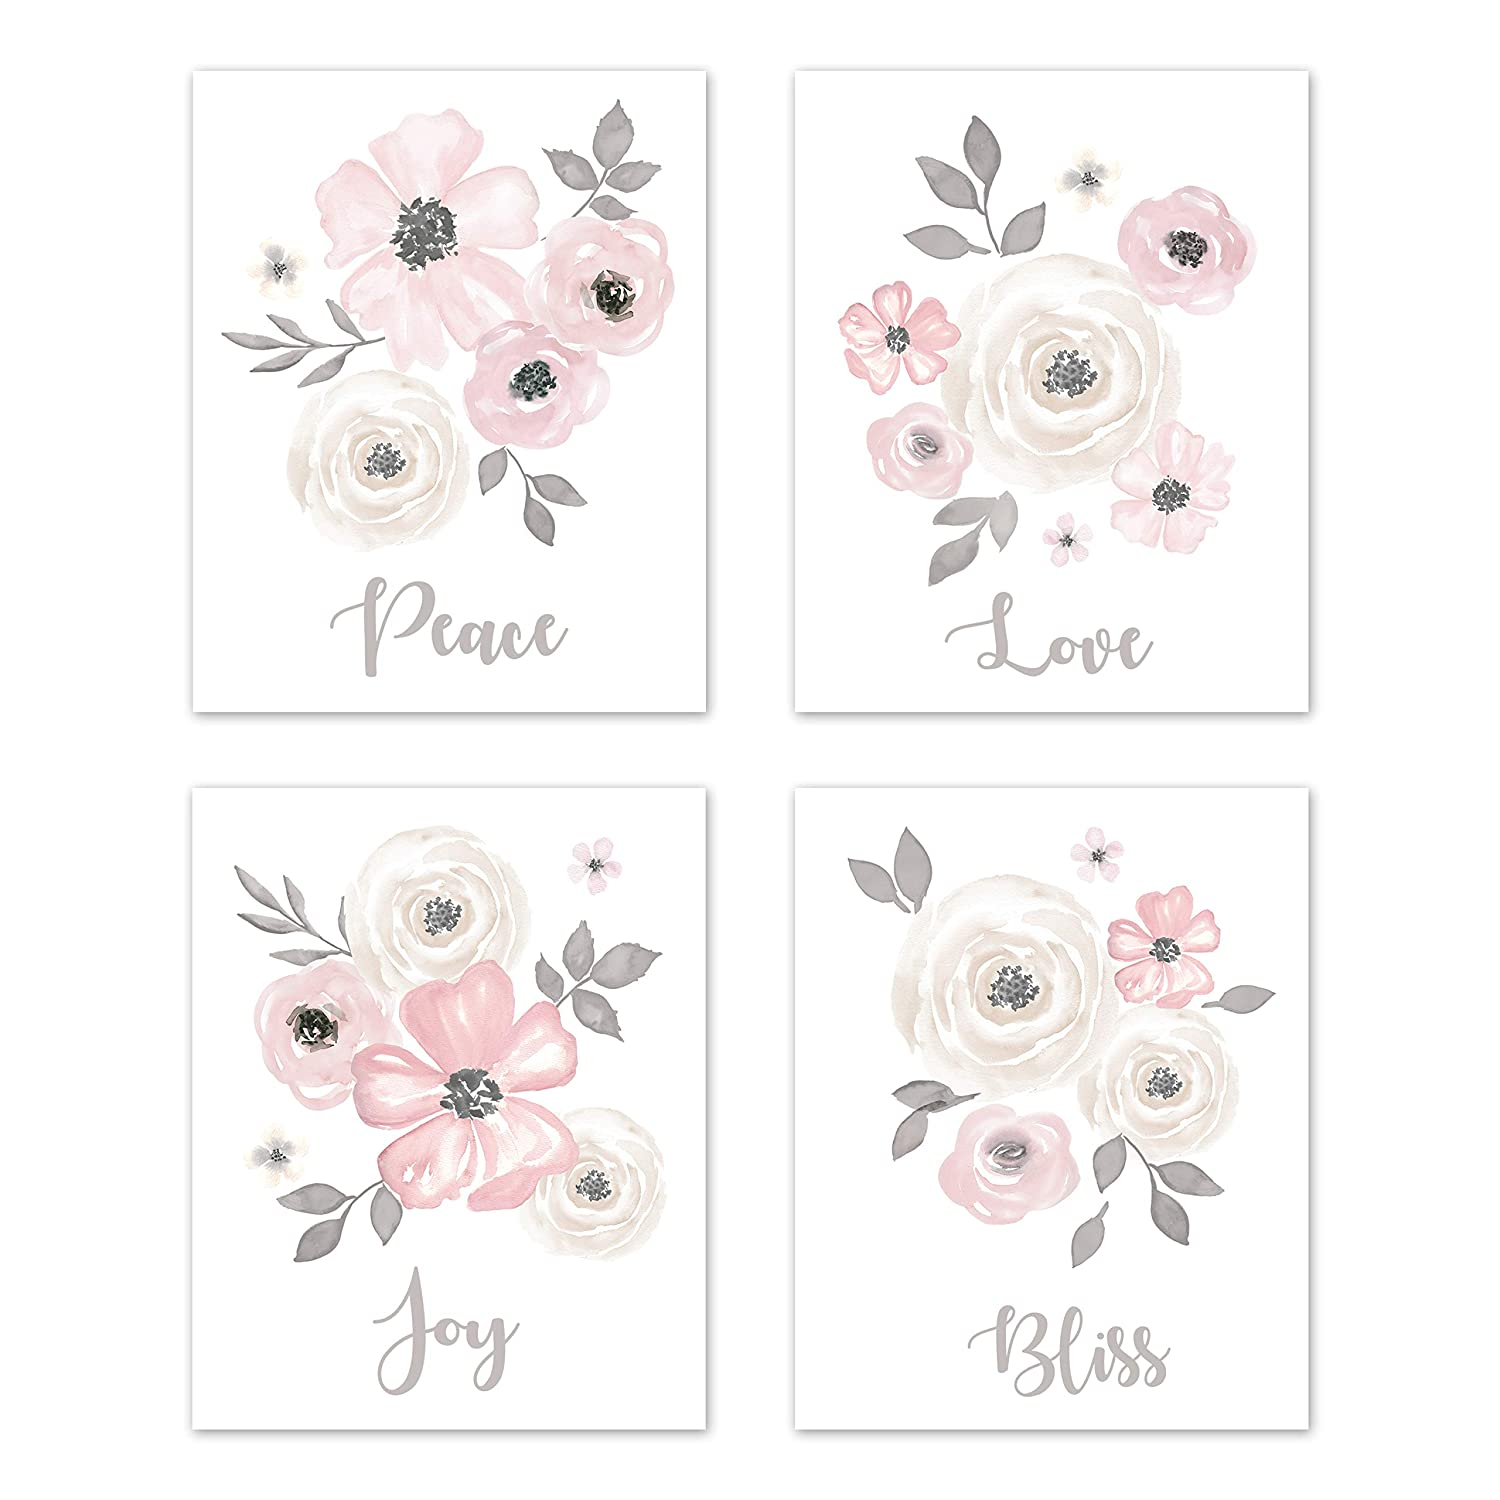 Sweet Jojo Designs Grey Watercolor Floral Wall Art Prints Room Decor for Baby, Nursery, and Kids - Set of 4 - Blush Pink Gray and White Shabby Chic Rose Flower Farmhouse